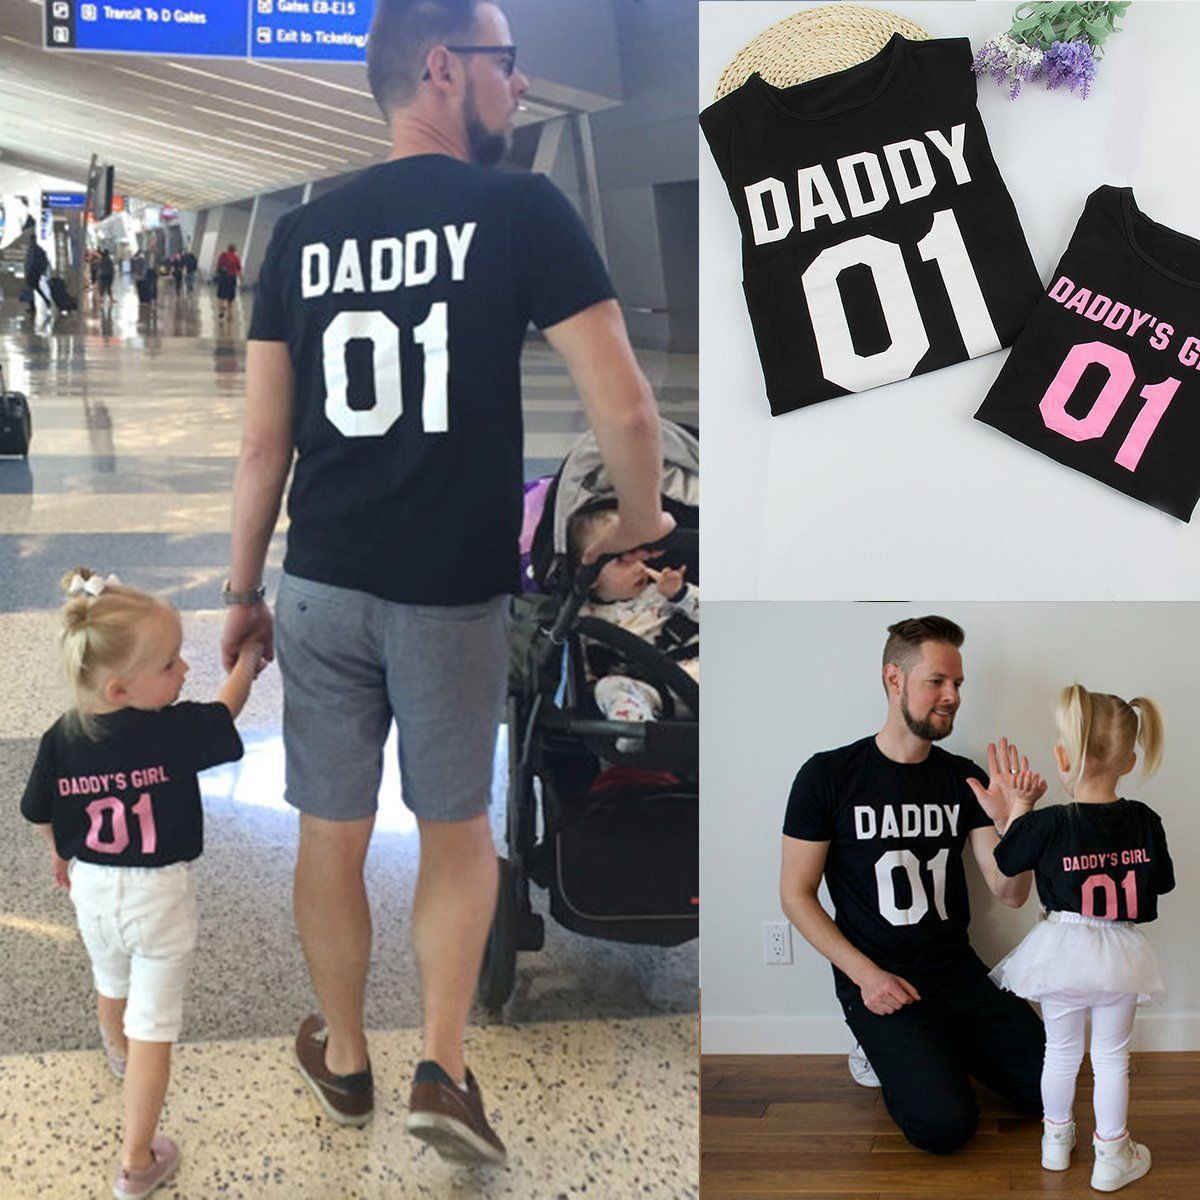 49b1450e 2017 Family T-Shirts DADDY & DADDY'S GIRL Father & Daughter T shirt Tops  Family